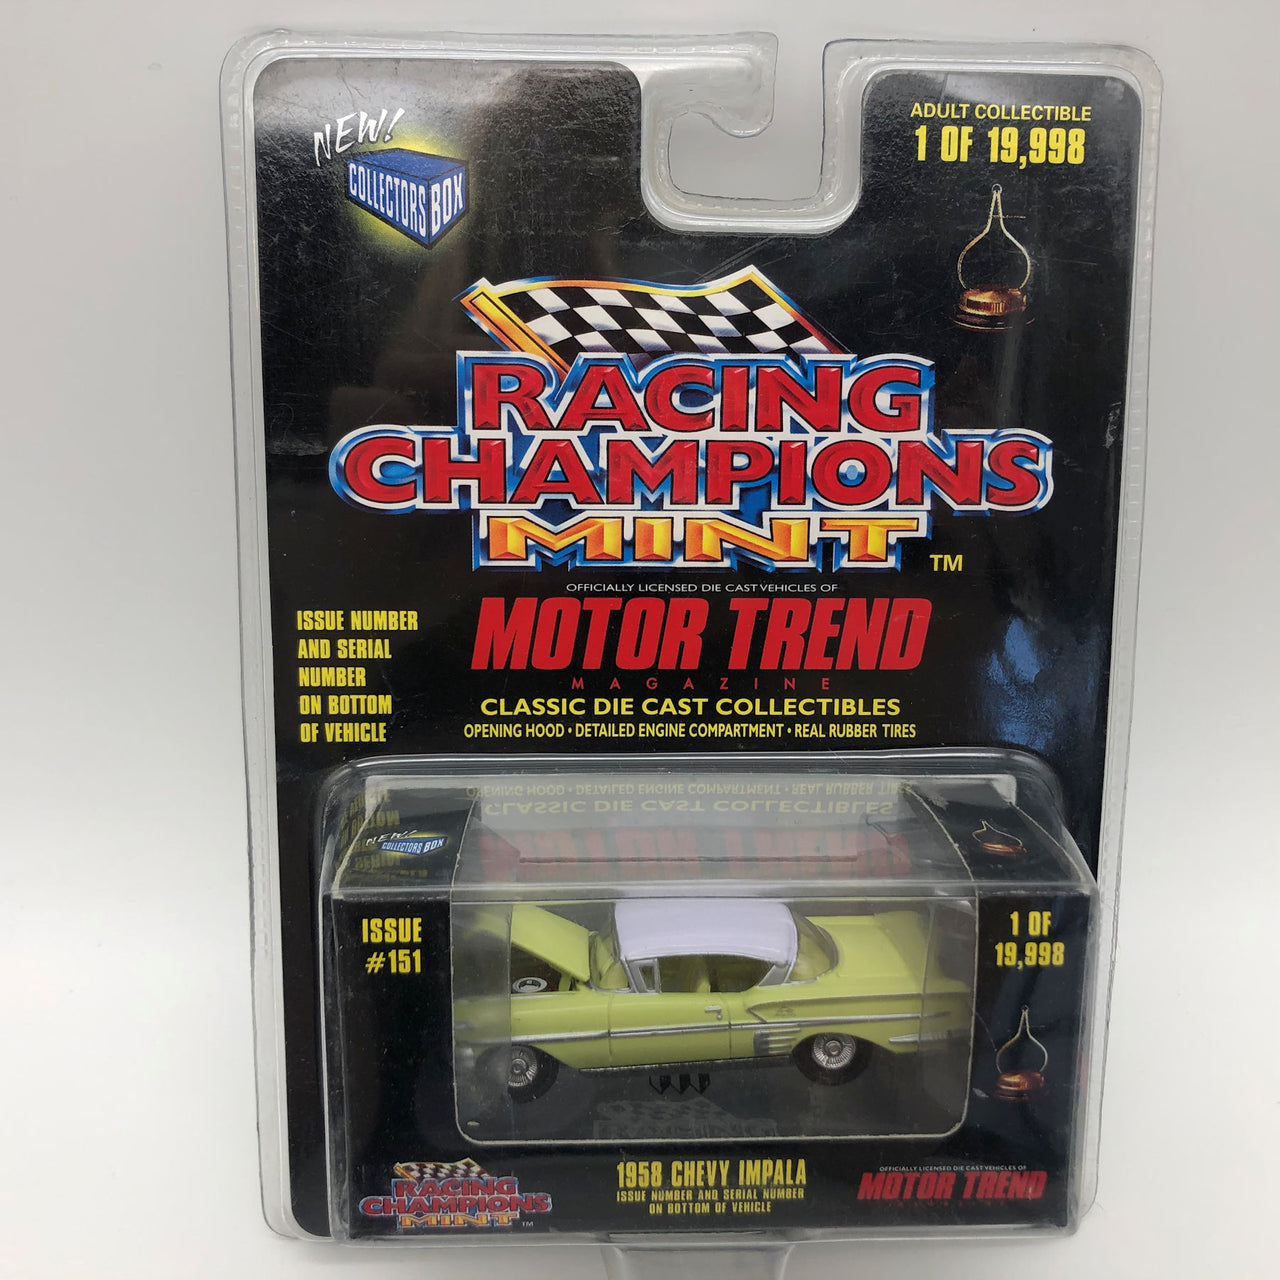 Racing Champions Mint 1958 Chevy Impala 1:64 Die Cast Car 3.25""